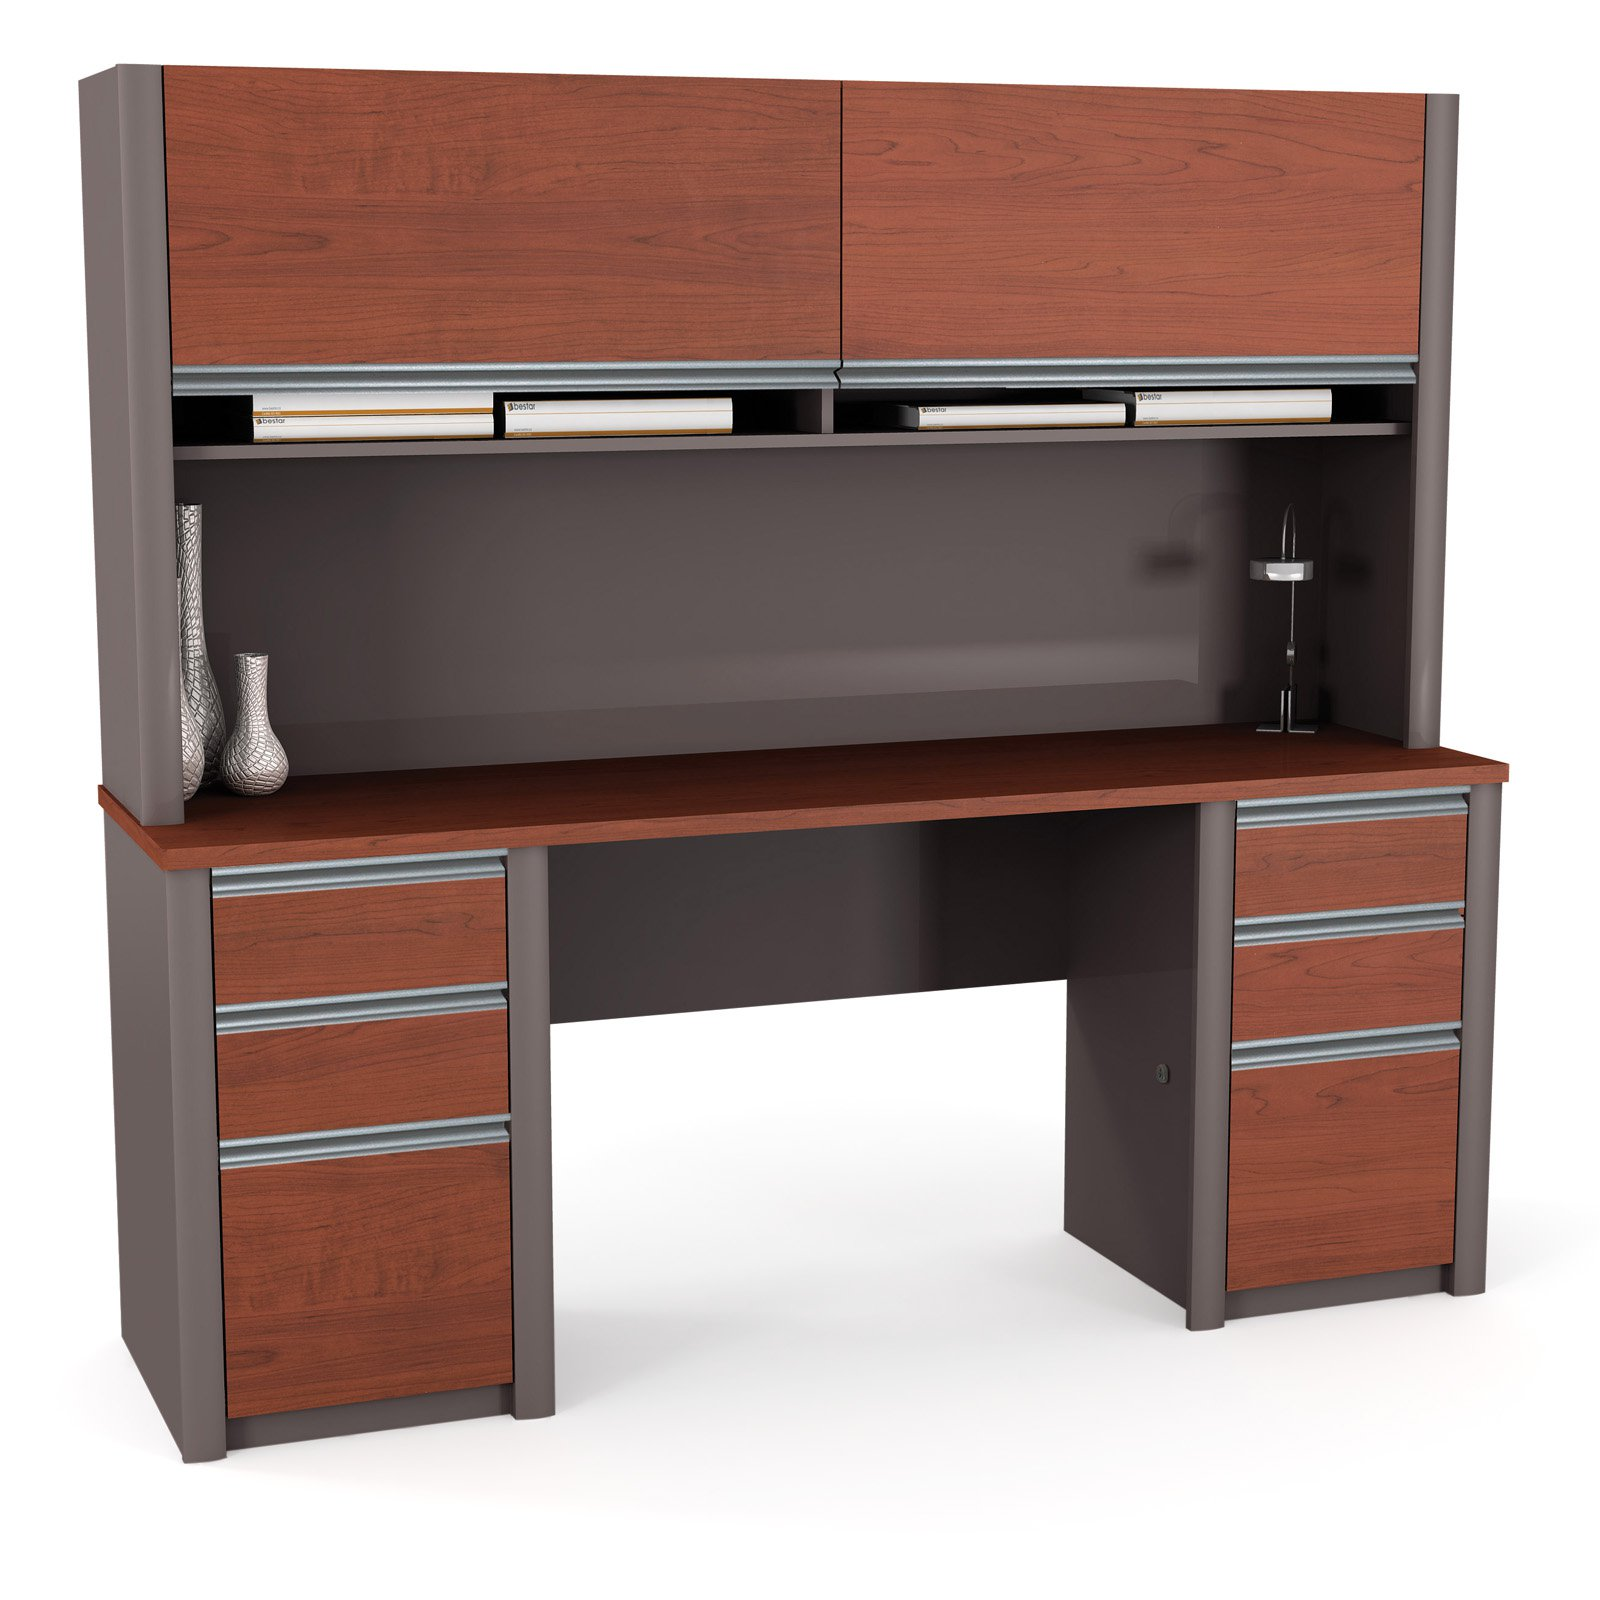 Bestar Connexion Double Pedestal Credenza Computer Desk and Hutch - Bordeaux / Slate